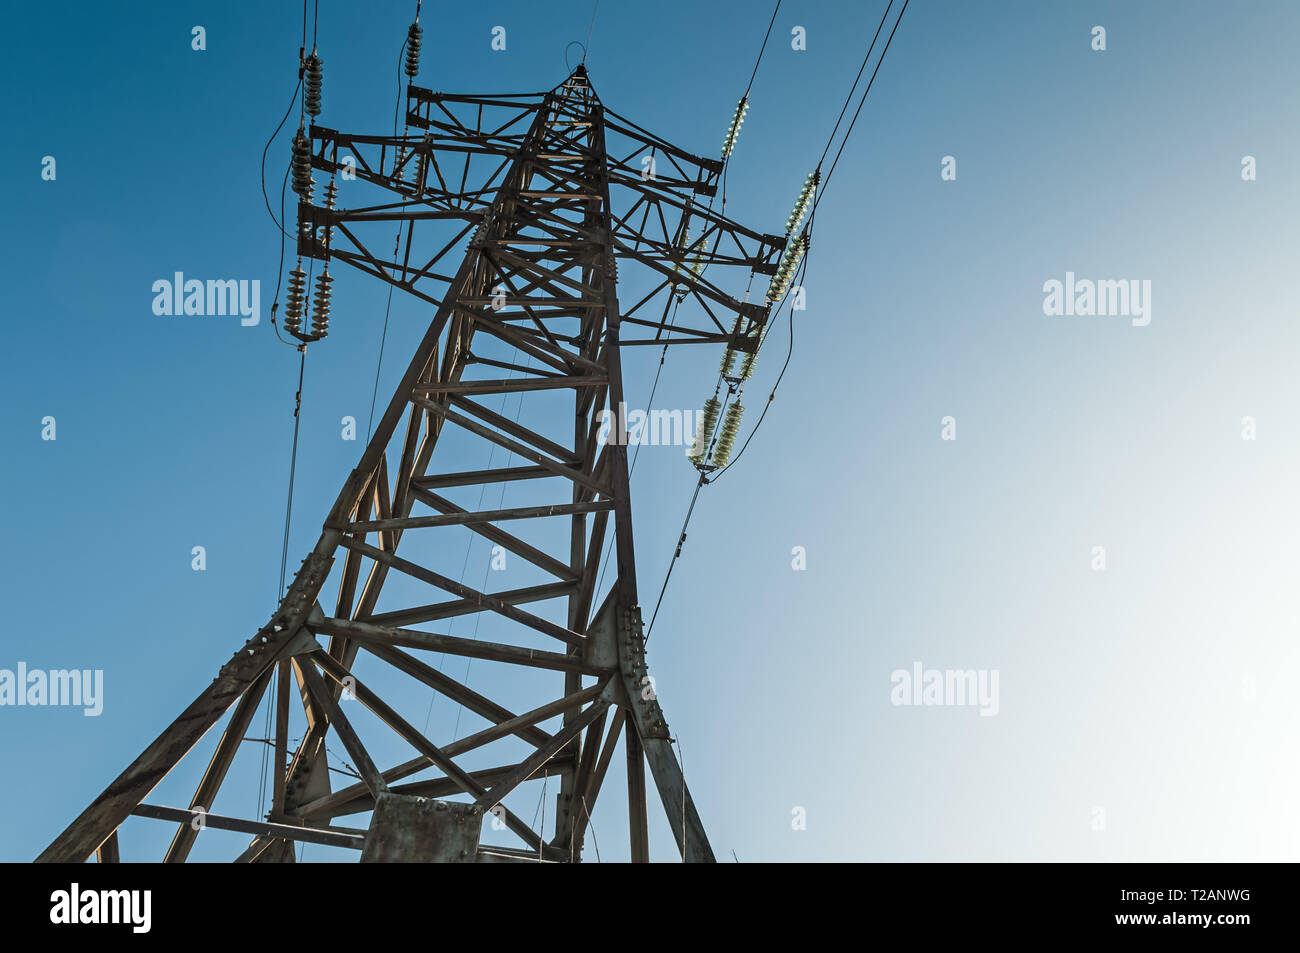 High voltage electricity pole on bright sky clouds background, electricity power transmission pylon - Stock Image